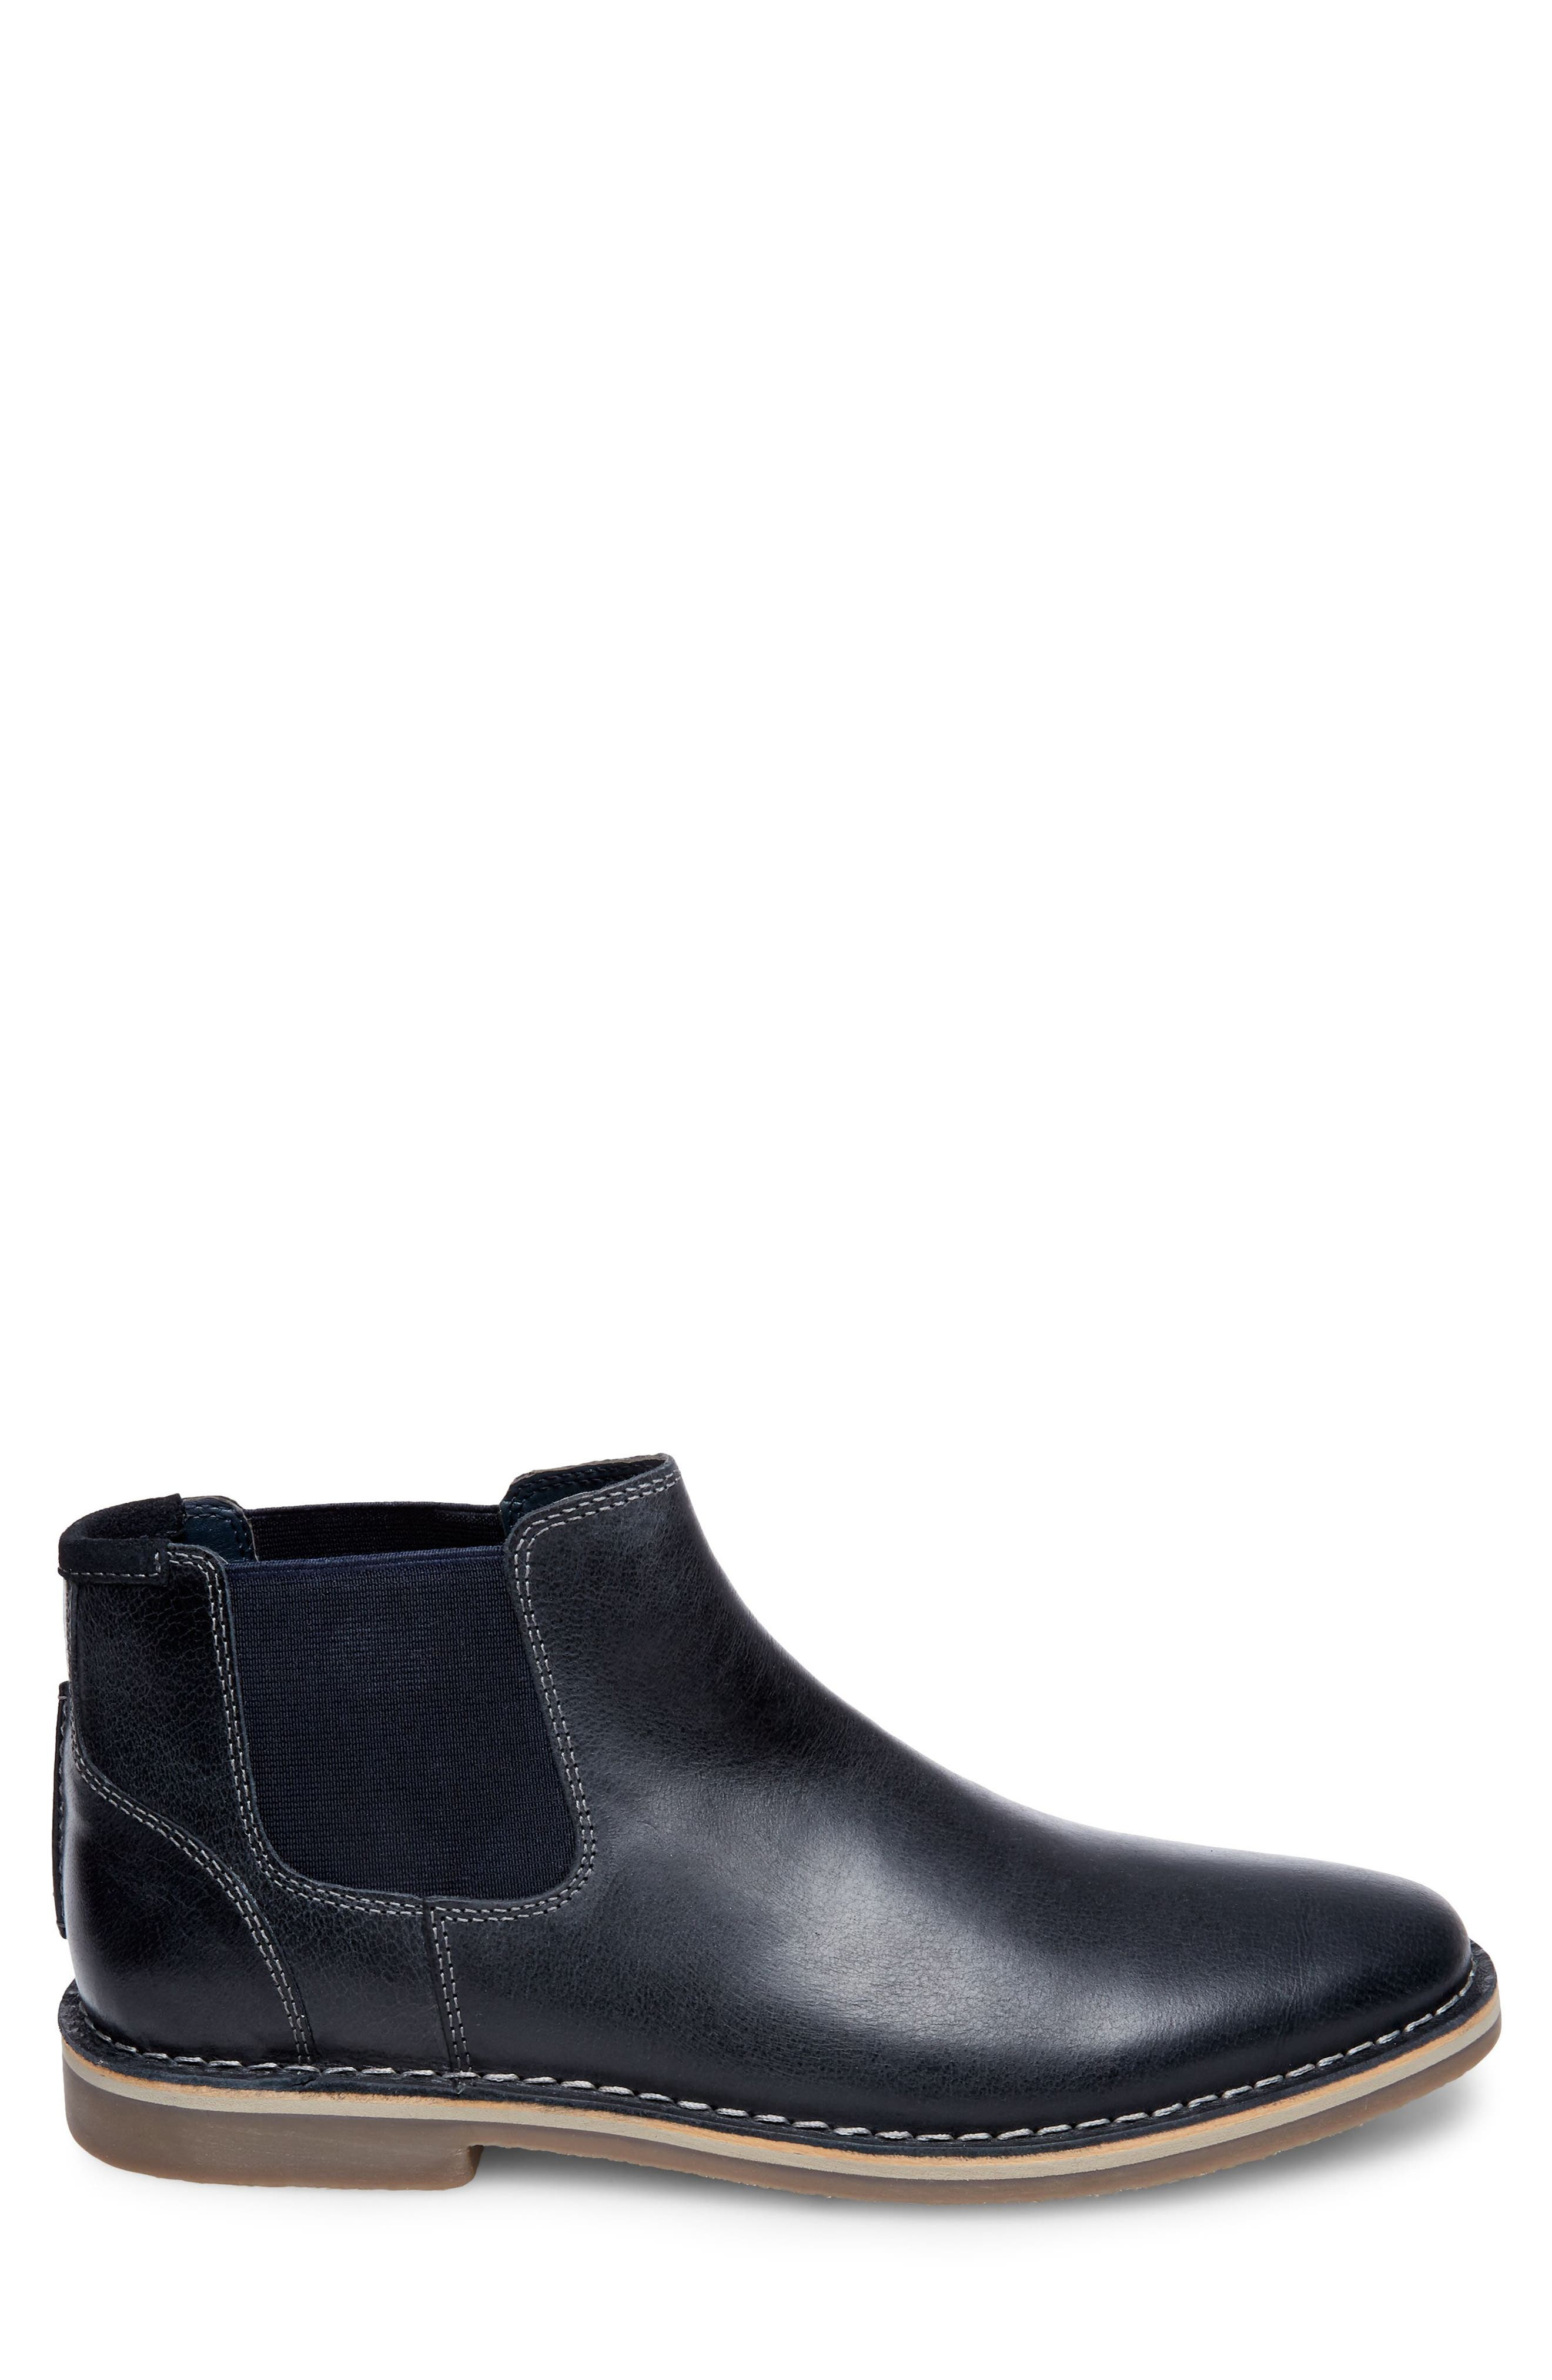 Horus Mid Top Chelsea Boot,                             Alternate thumbnail 3, color,                             Navy Leather